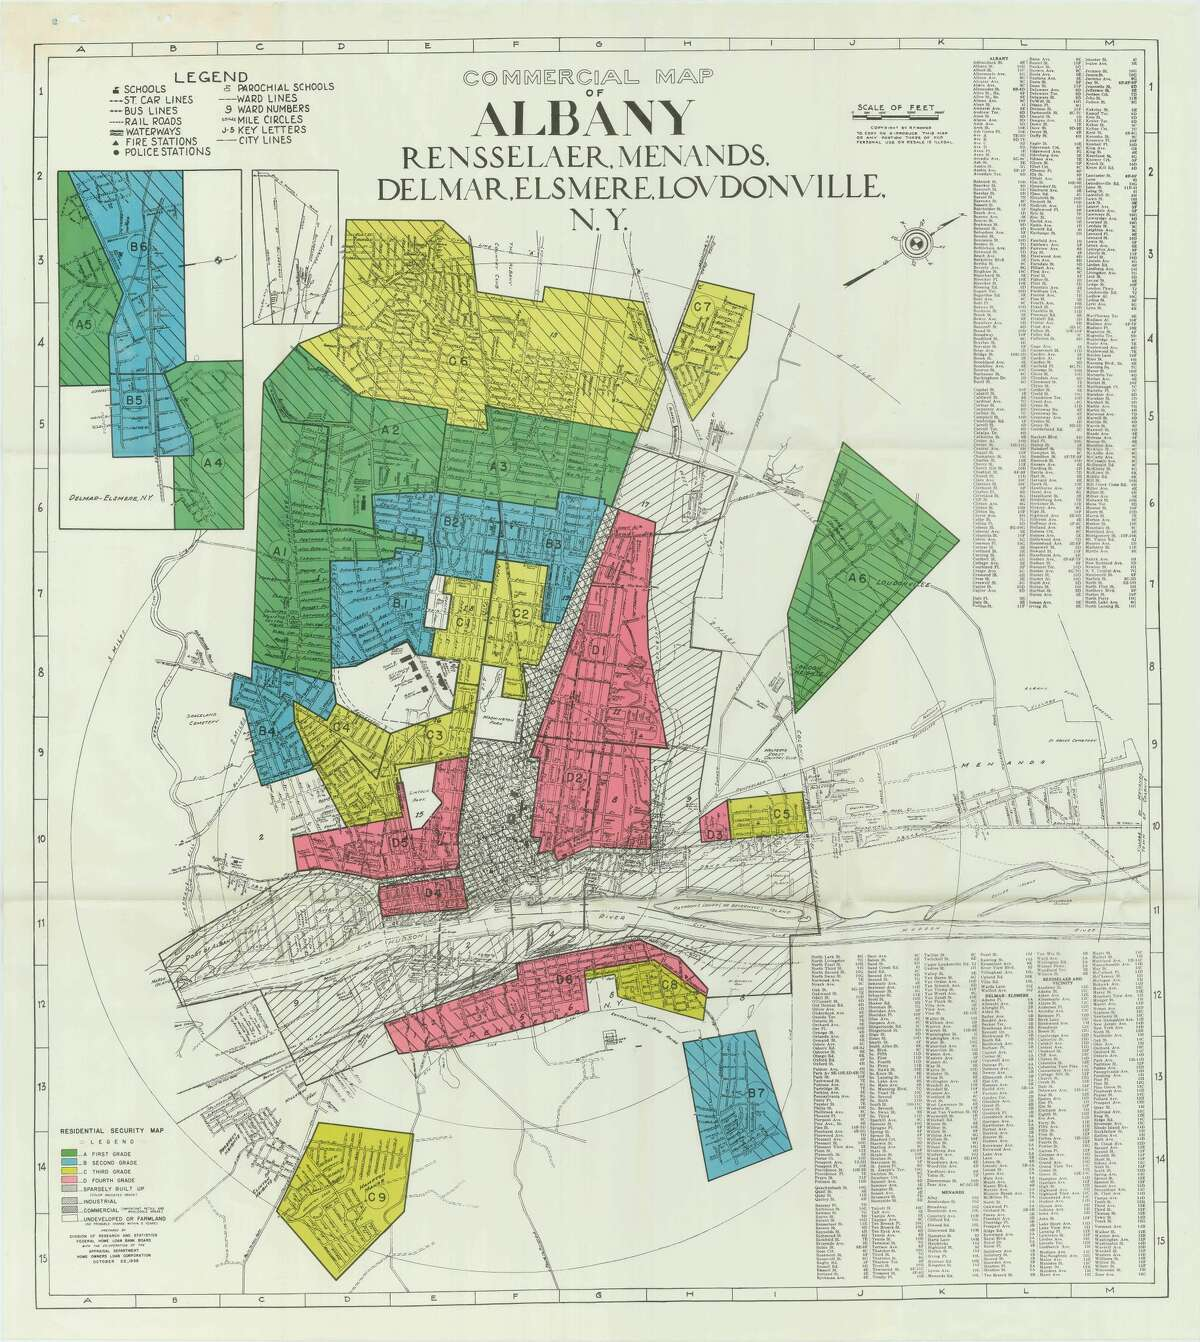 """The roots of Albany's disparities can be seen as far back as 1938, when parts of the city were """"redlined"""" as part of a post-Depression survey conducted by the federal Home Owners' Loan Corp. Officials composed maps of hundreds of U.S. cities that categorized certain neighborhoods based on what local banks and realtors perceived to be the market for real estate investment. Those deemed too risky for investment were shown in red."""